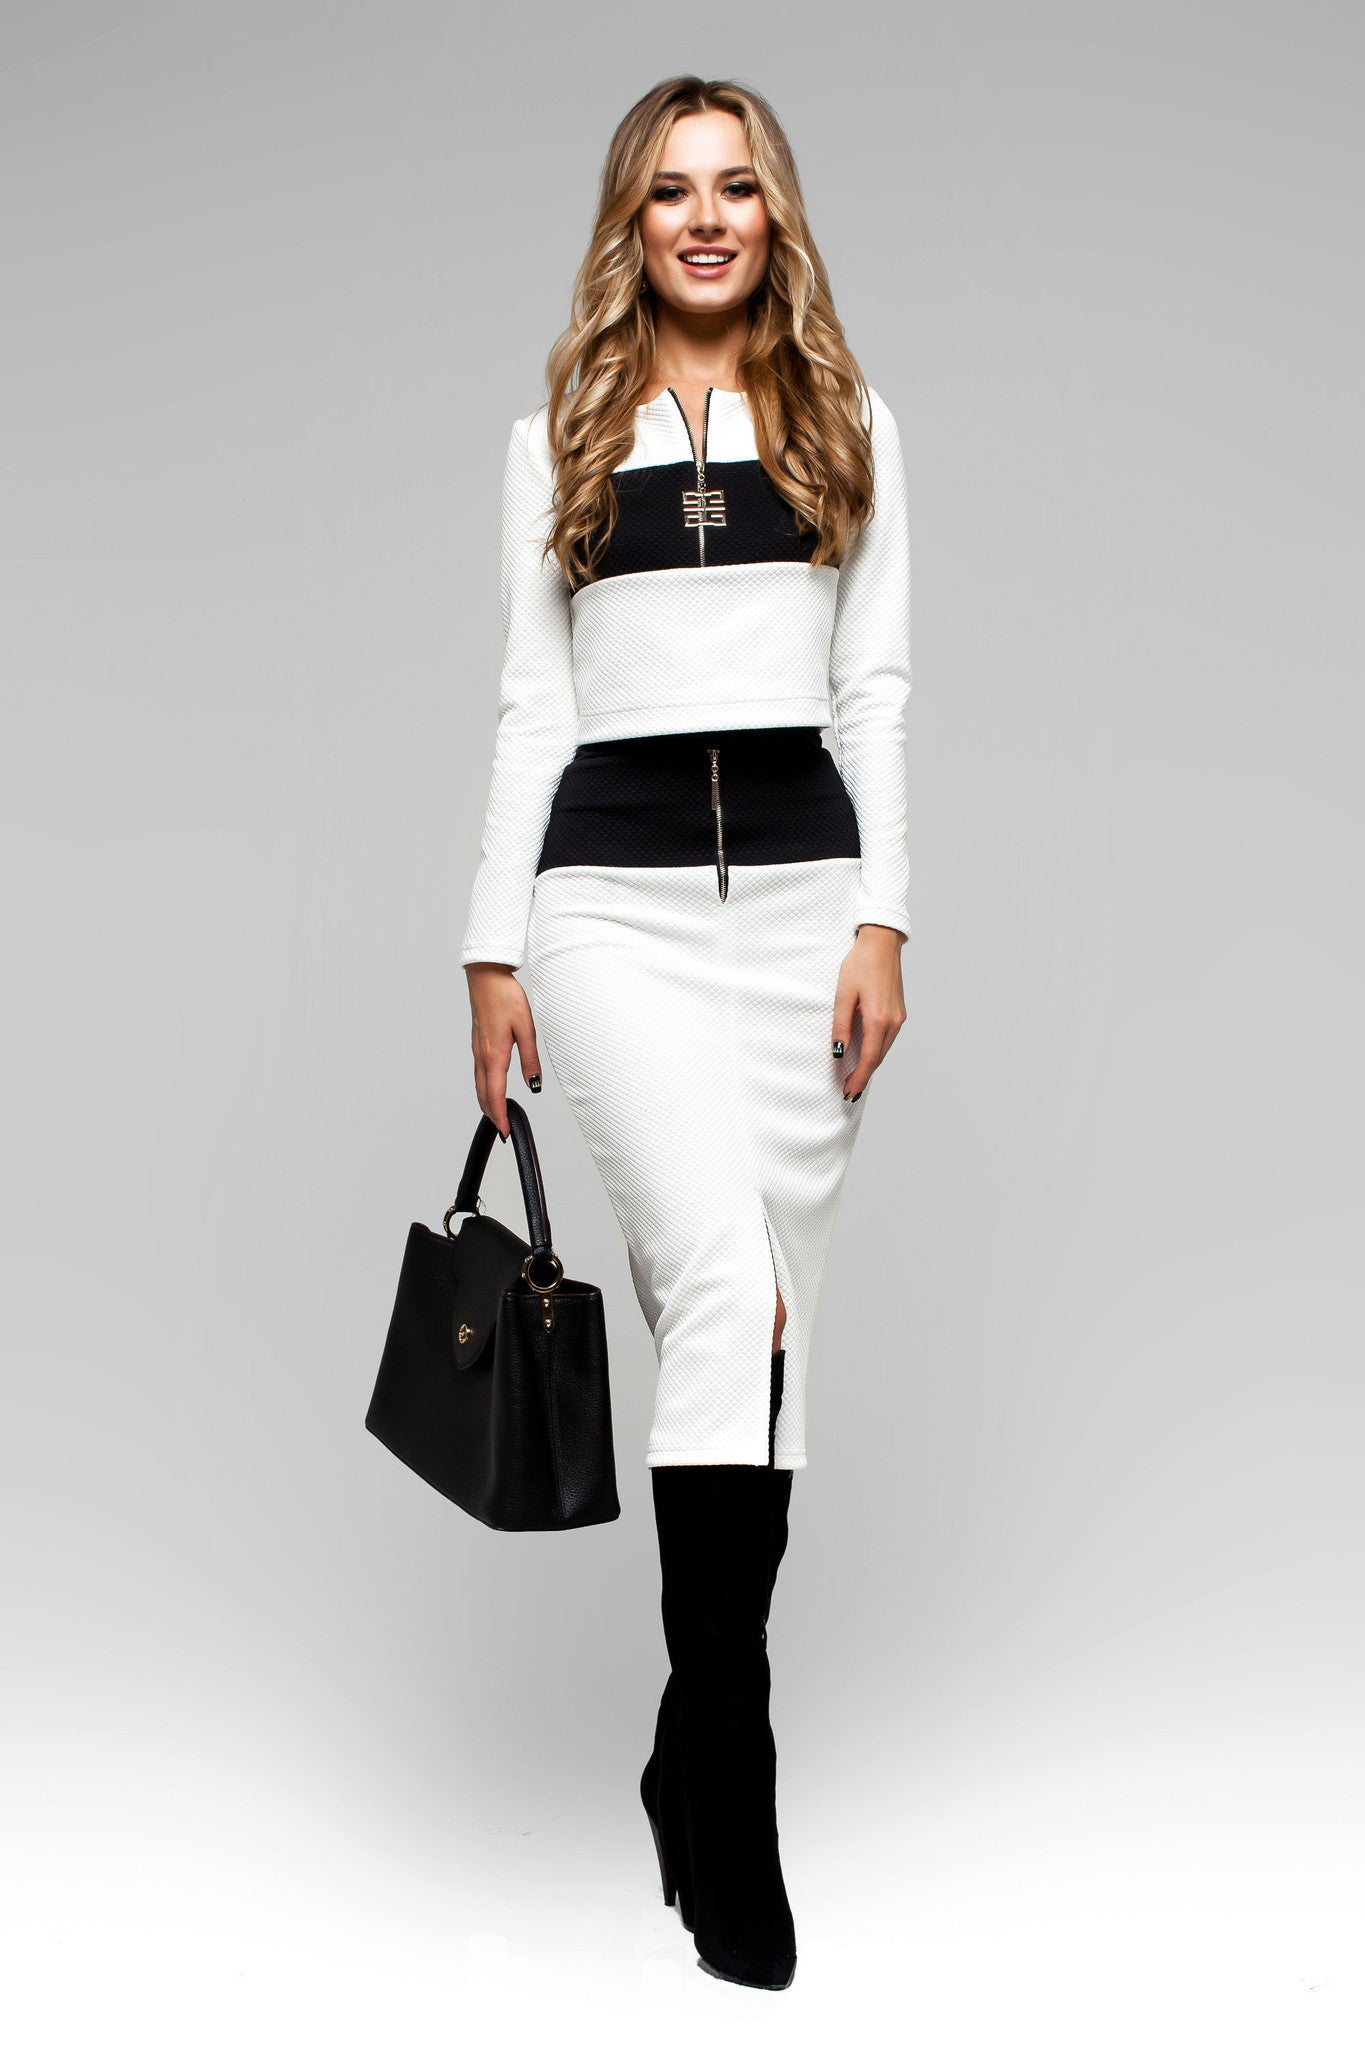 White & Black Two Piece Long Sleeve Skirt Suit Dress with Pencil ...